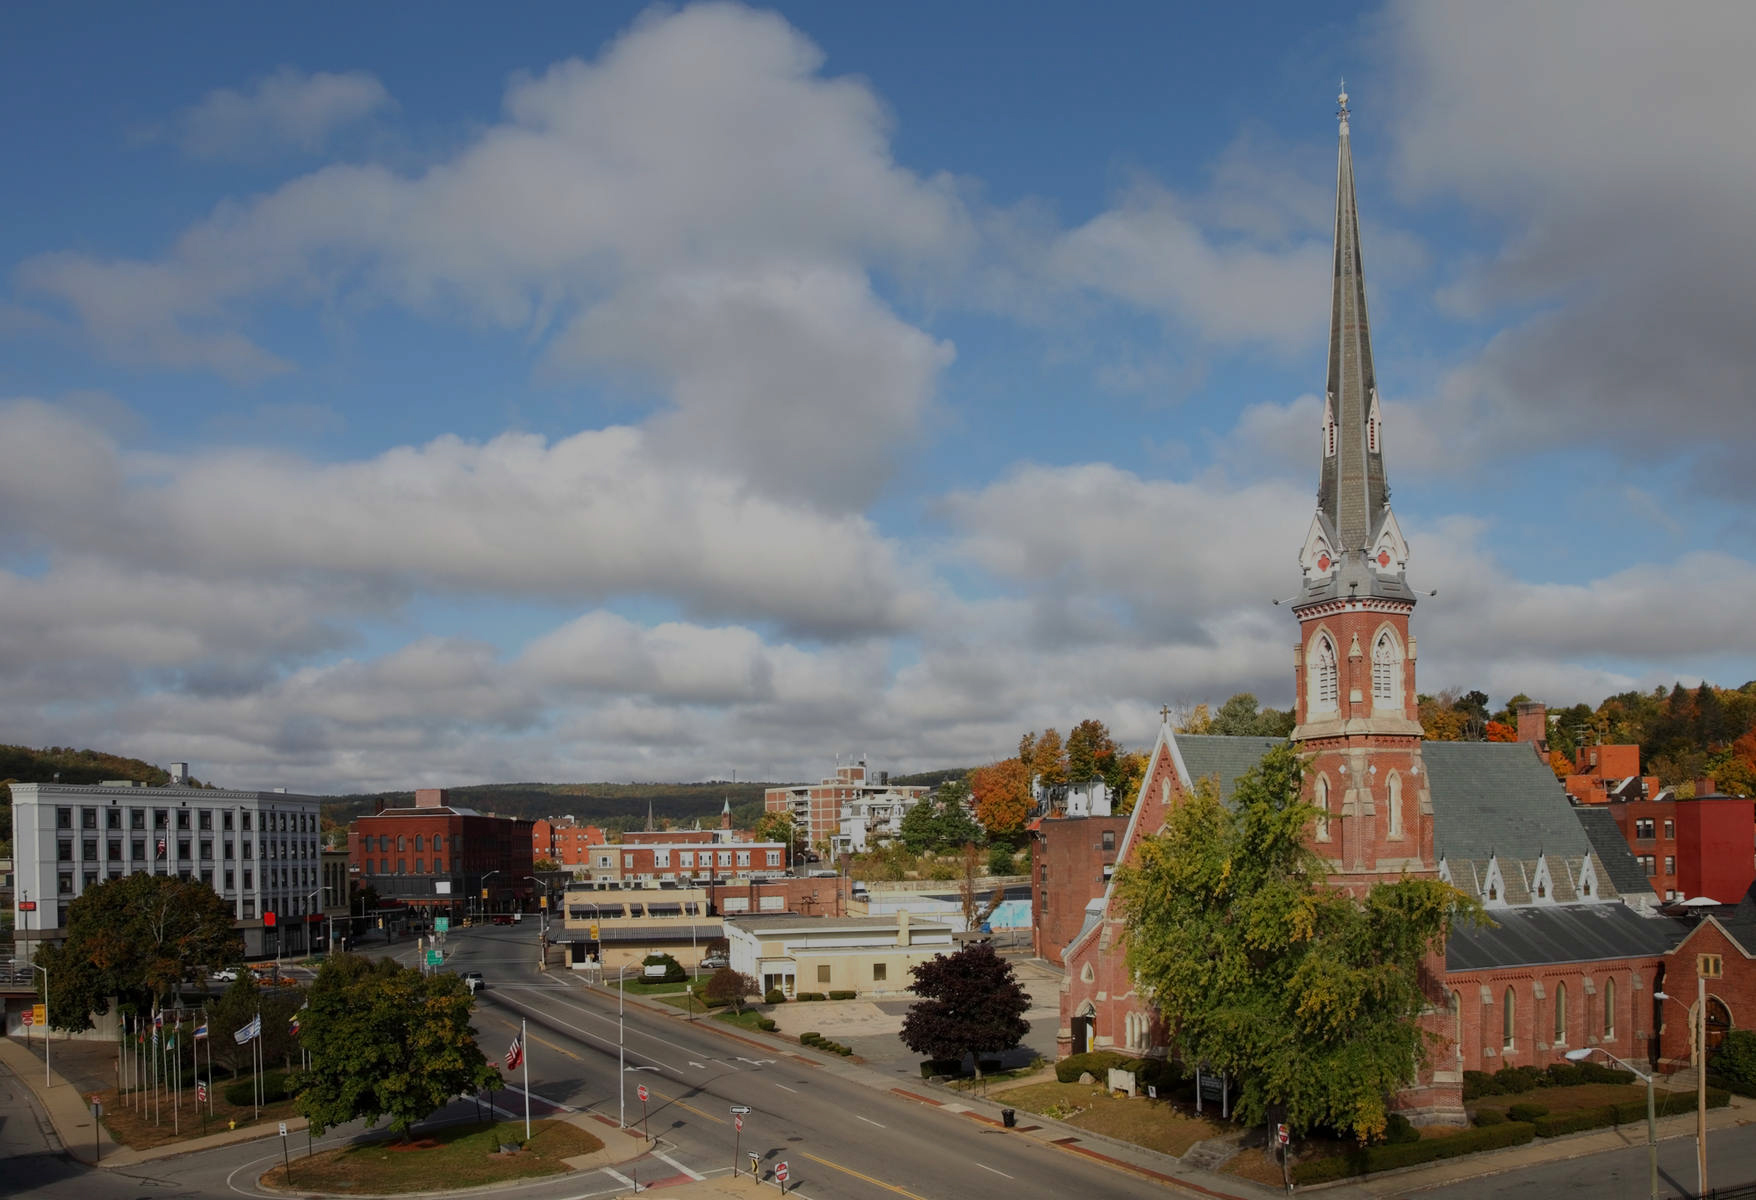 Nickless, Phillips, and O'Connor lawyers in Fitchburg Massachusetts